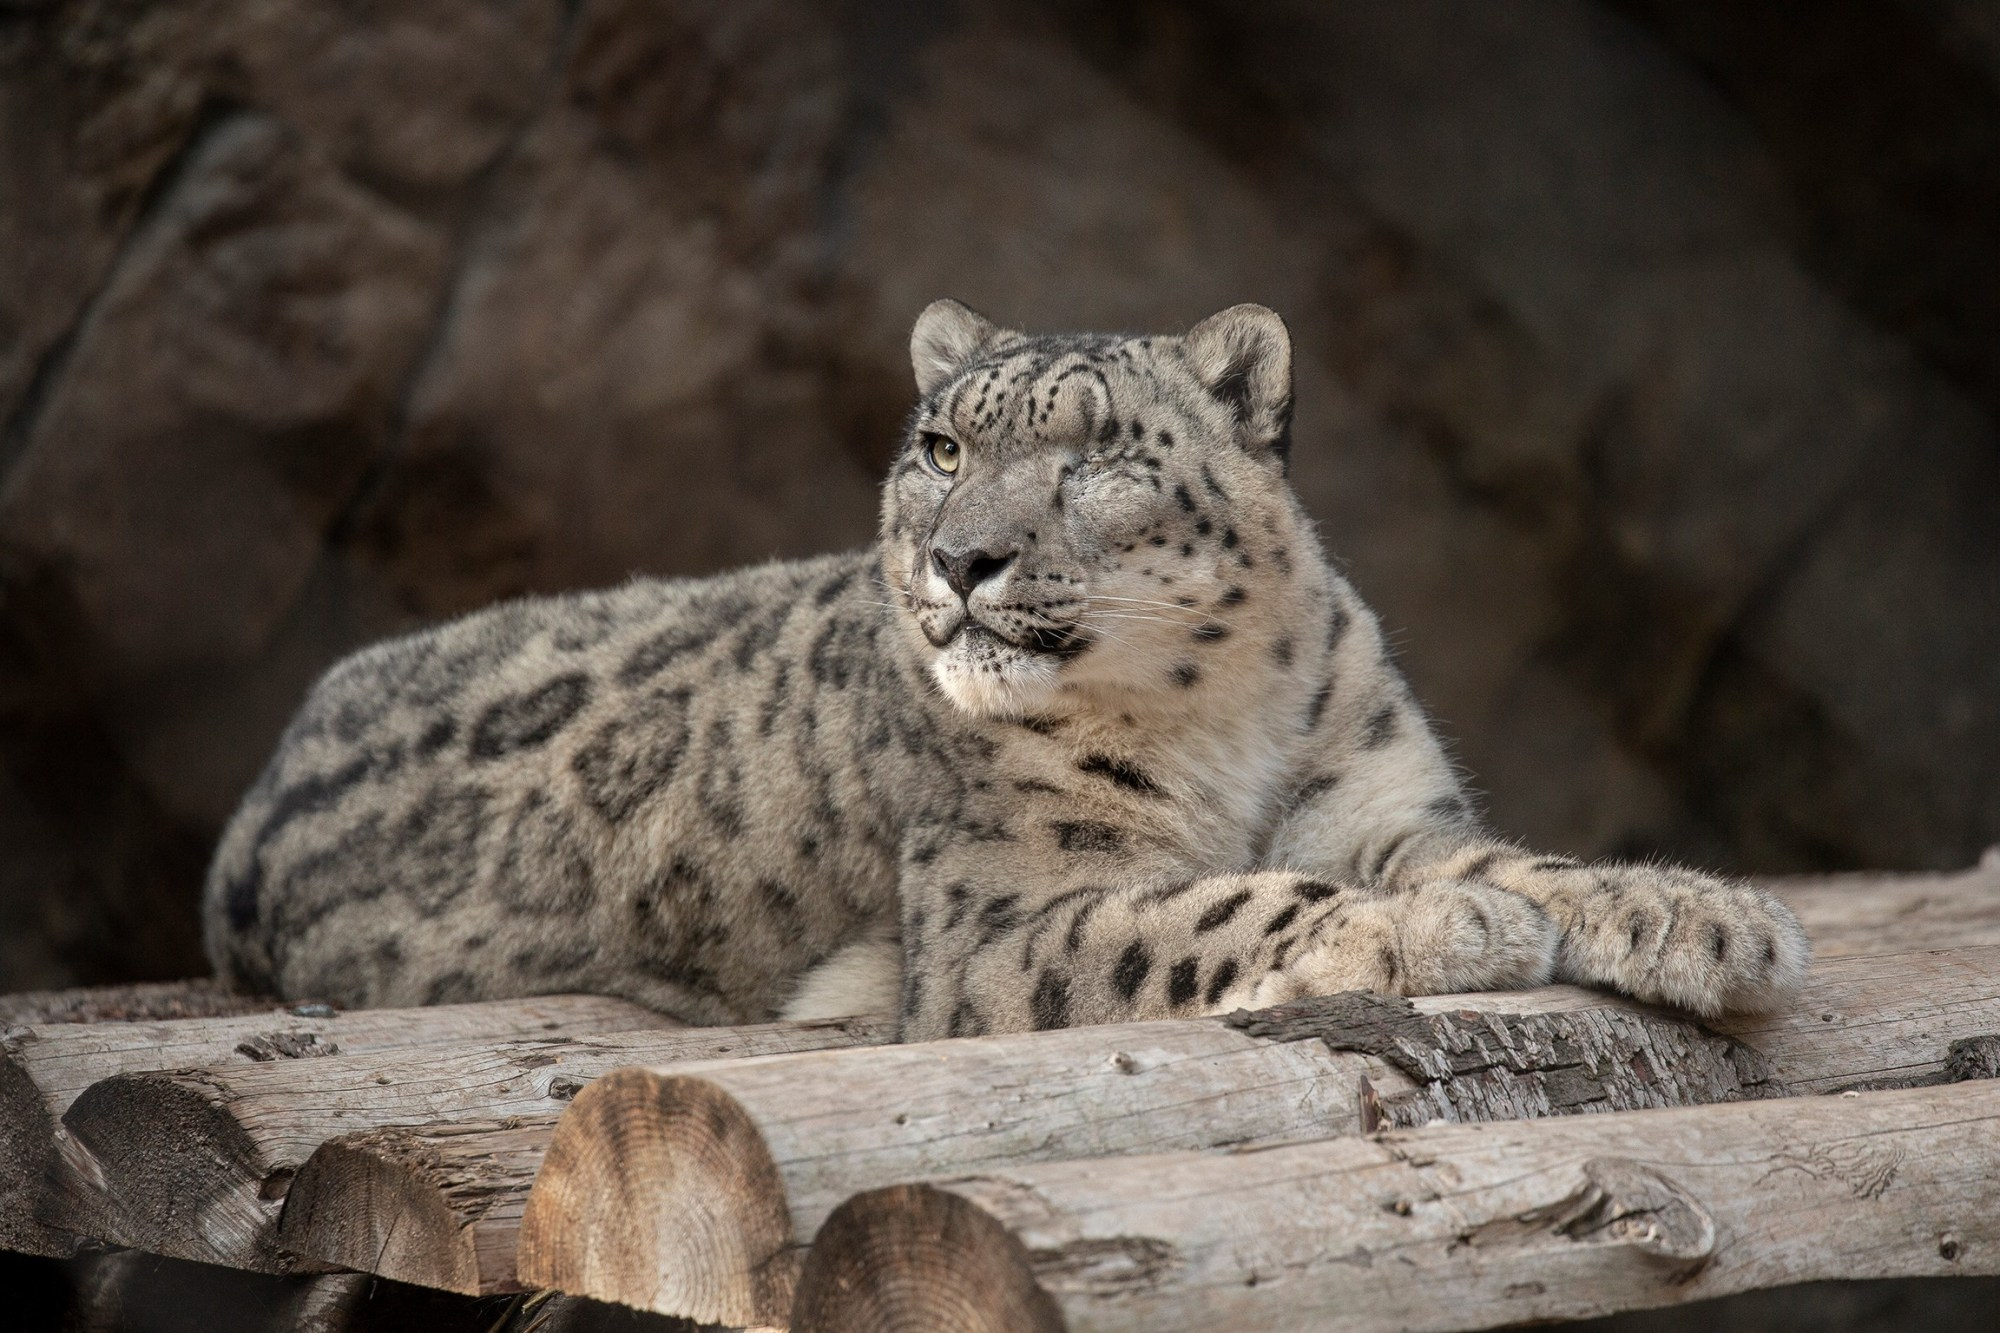 The male snow leopard who is suspected of having the coronavirus is seen in a photo released by the San Diego Zoo.